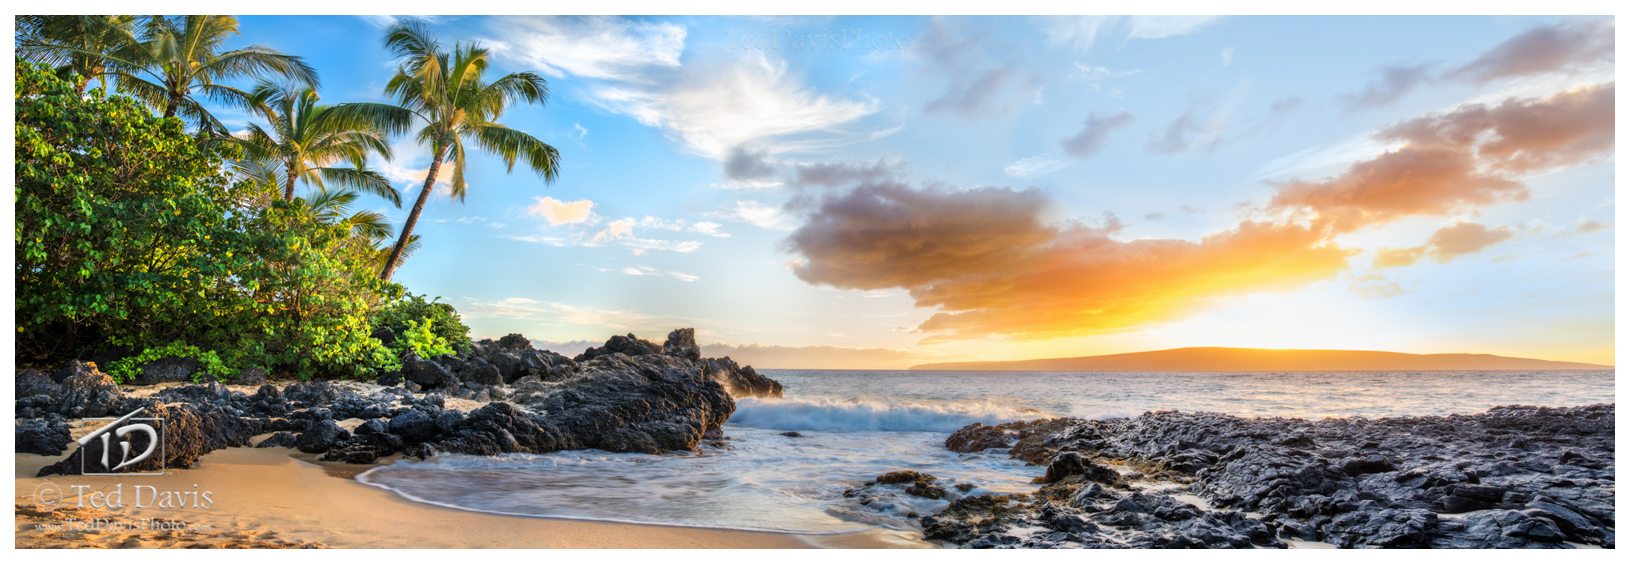 beech, secret, cove, maui, hawaii, sunset, beautiful, west, shore, sunrise, voice, vision, waves, volcanic, sun, trees, palm, photo